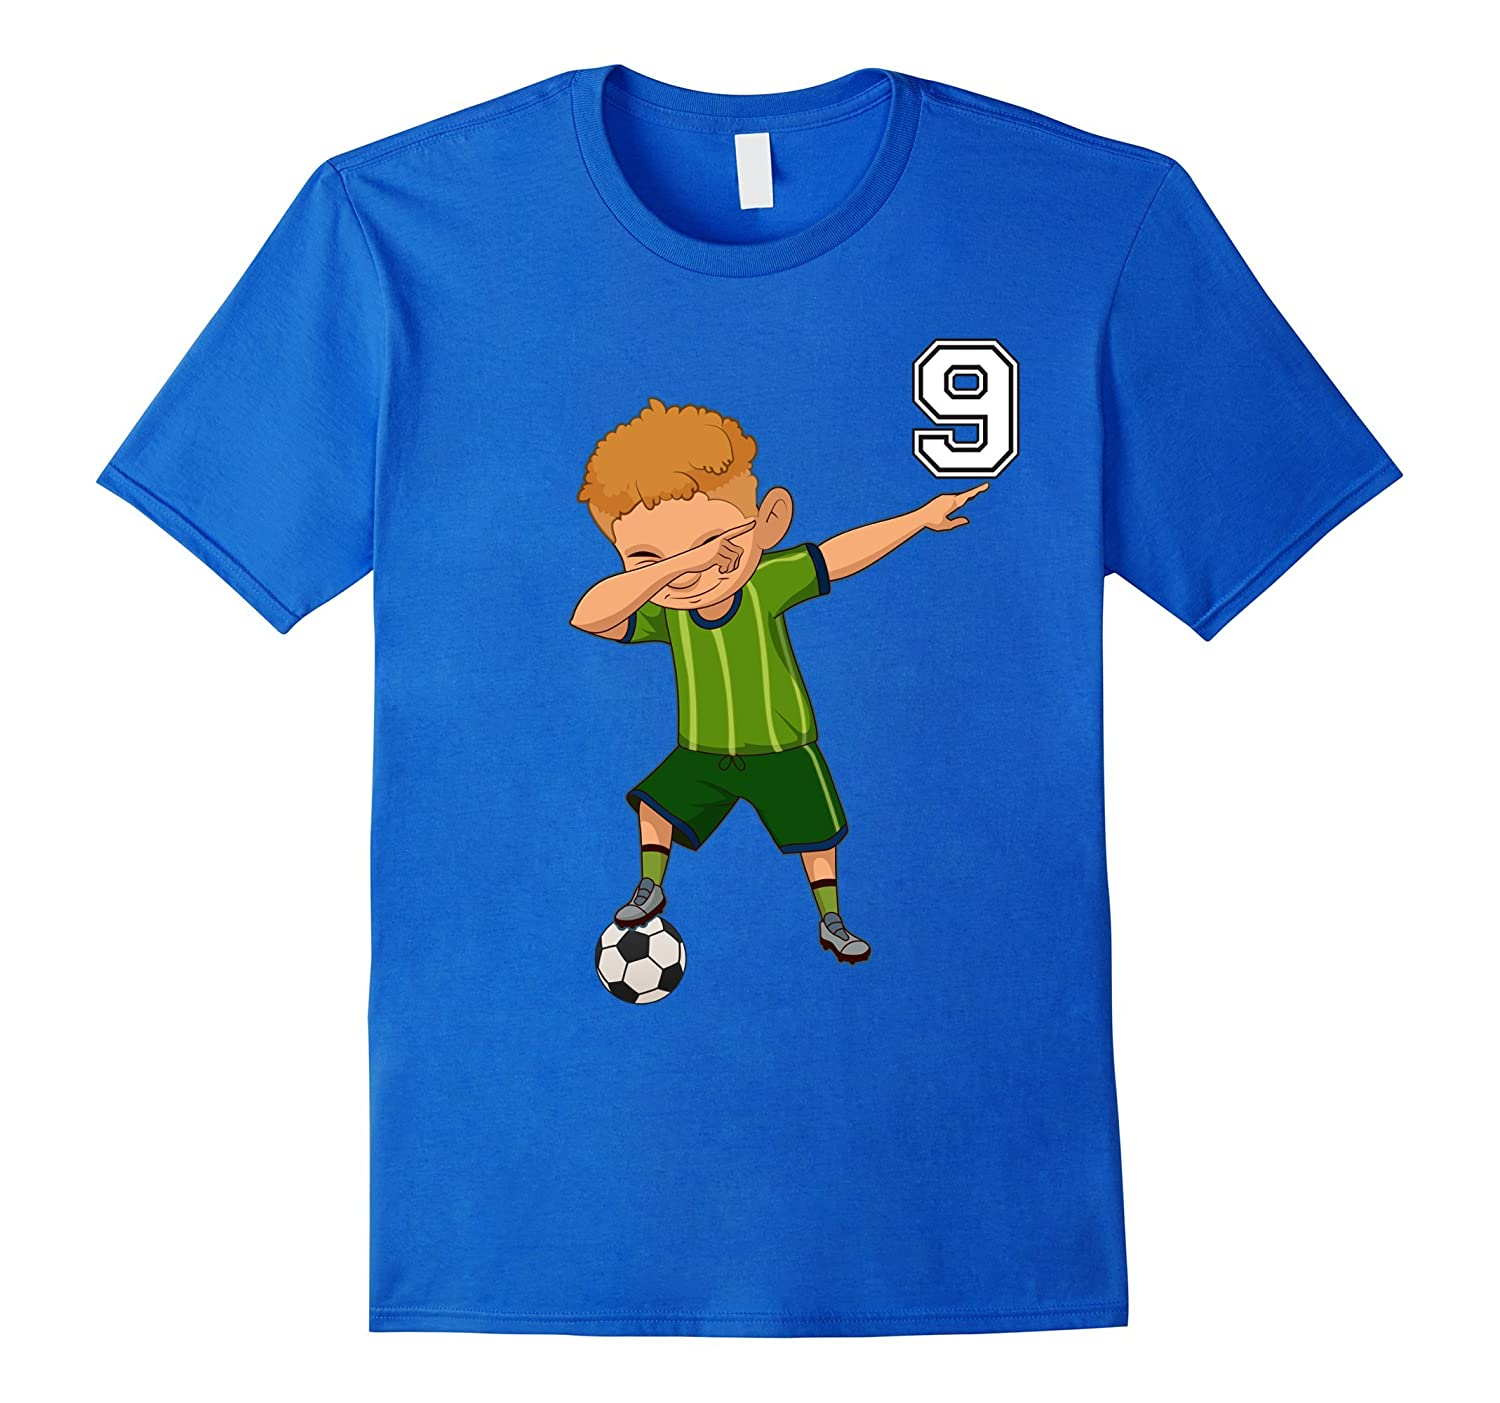 9 Soccer Shirt Boys Funny Dabbing Dab Dance Christmas Gifts-RT